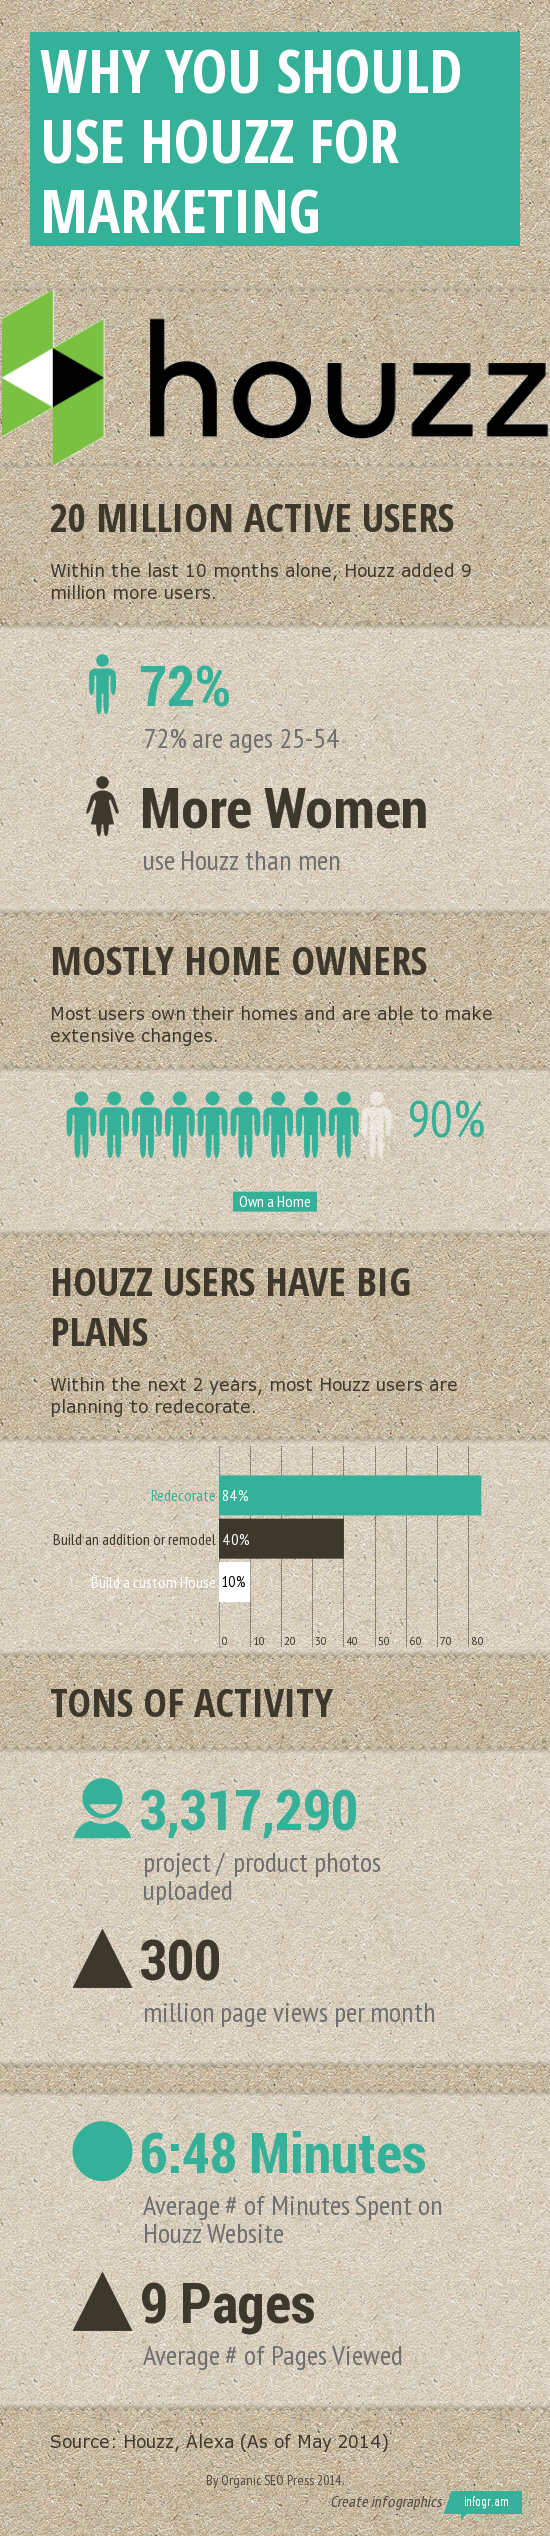 Houzz for Marketing Infographic